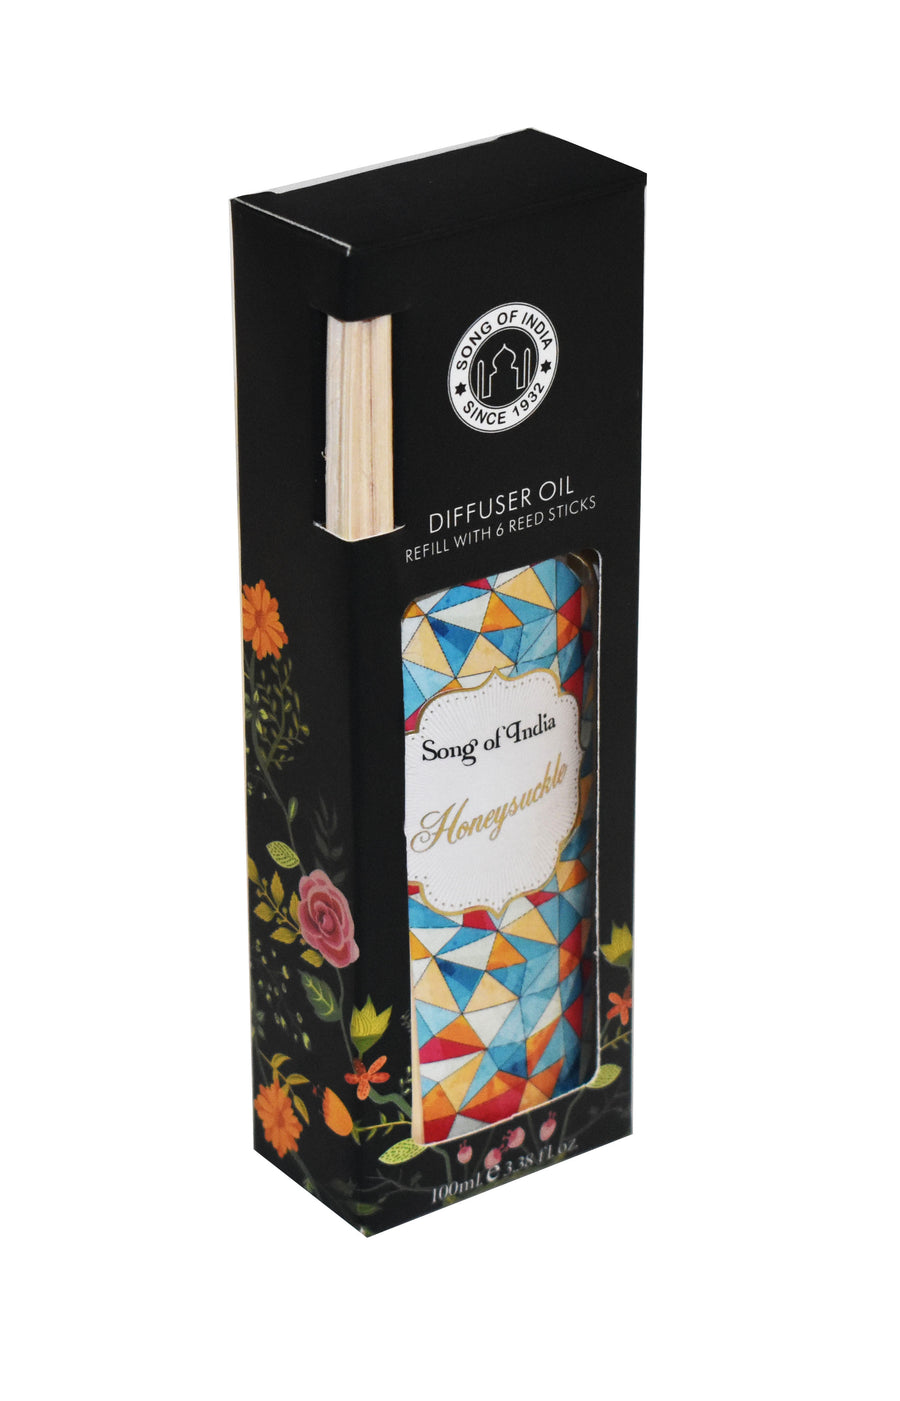 Song of India 100 ml Honeysuckle Little Pleasures Diffuser Oil